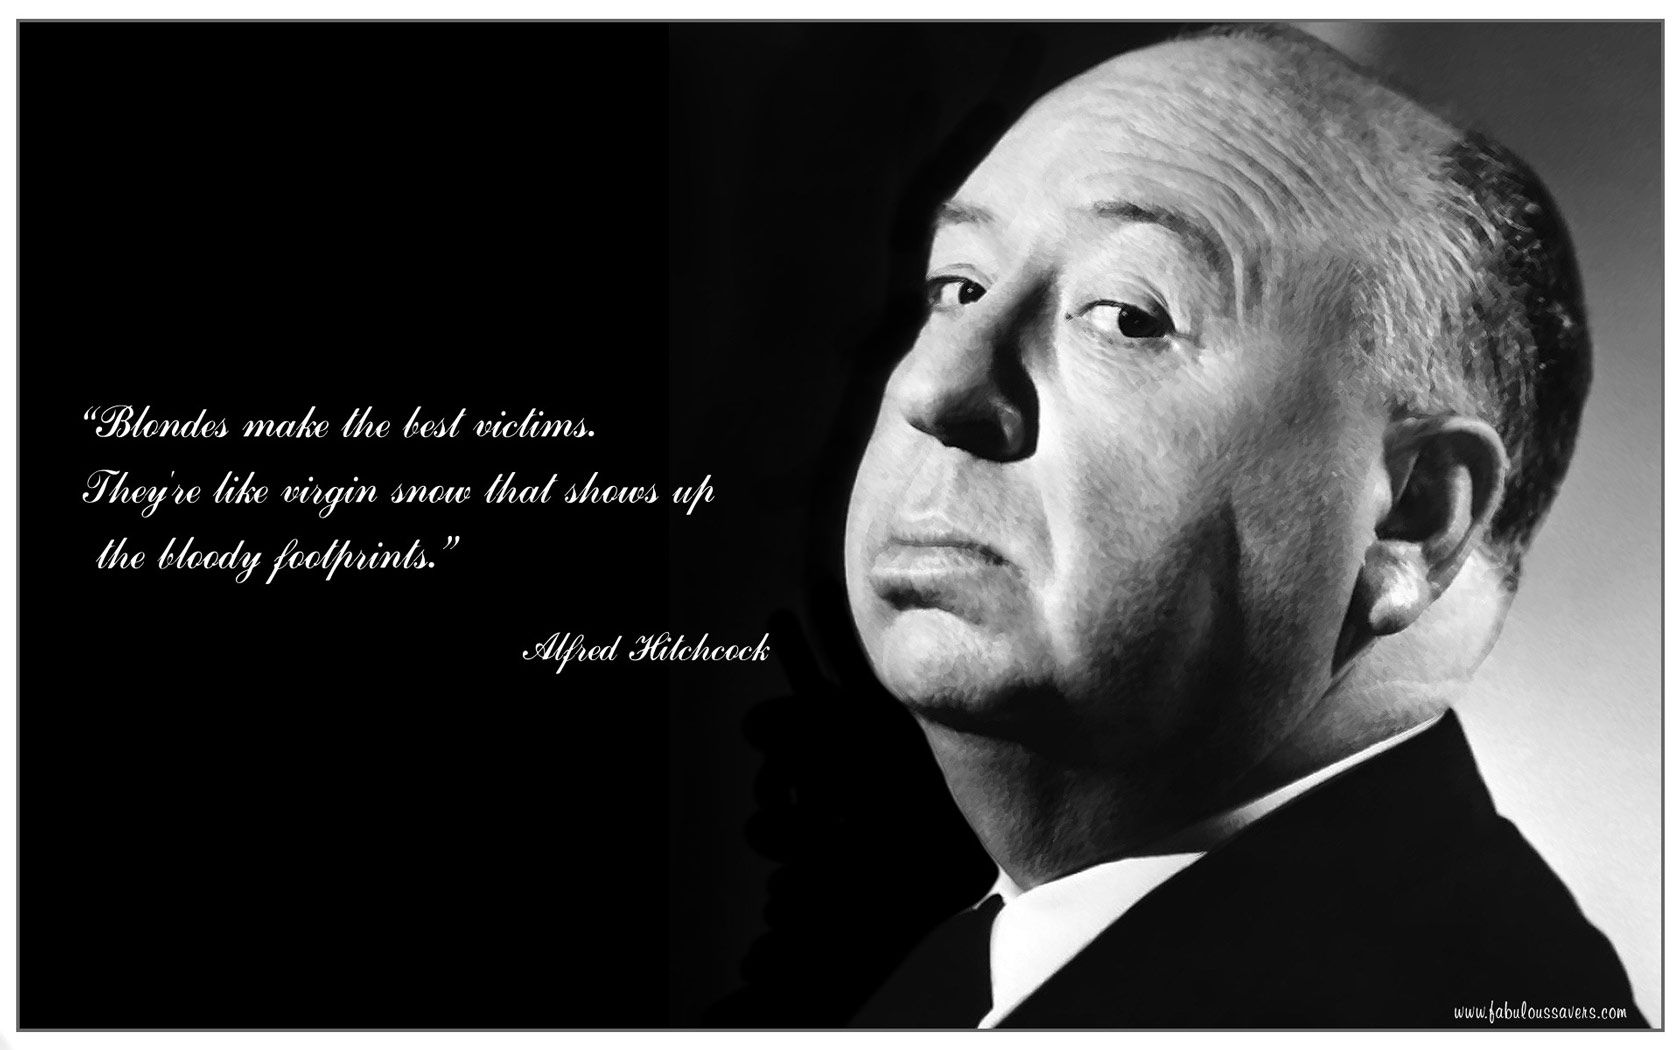 1680x1050 - Alfred Hitchcock Wallpapers 2